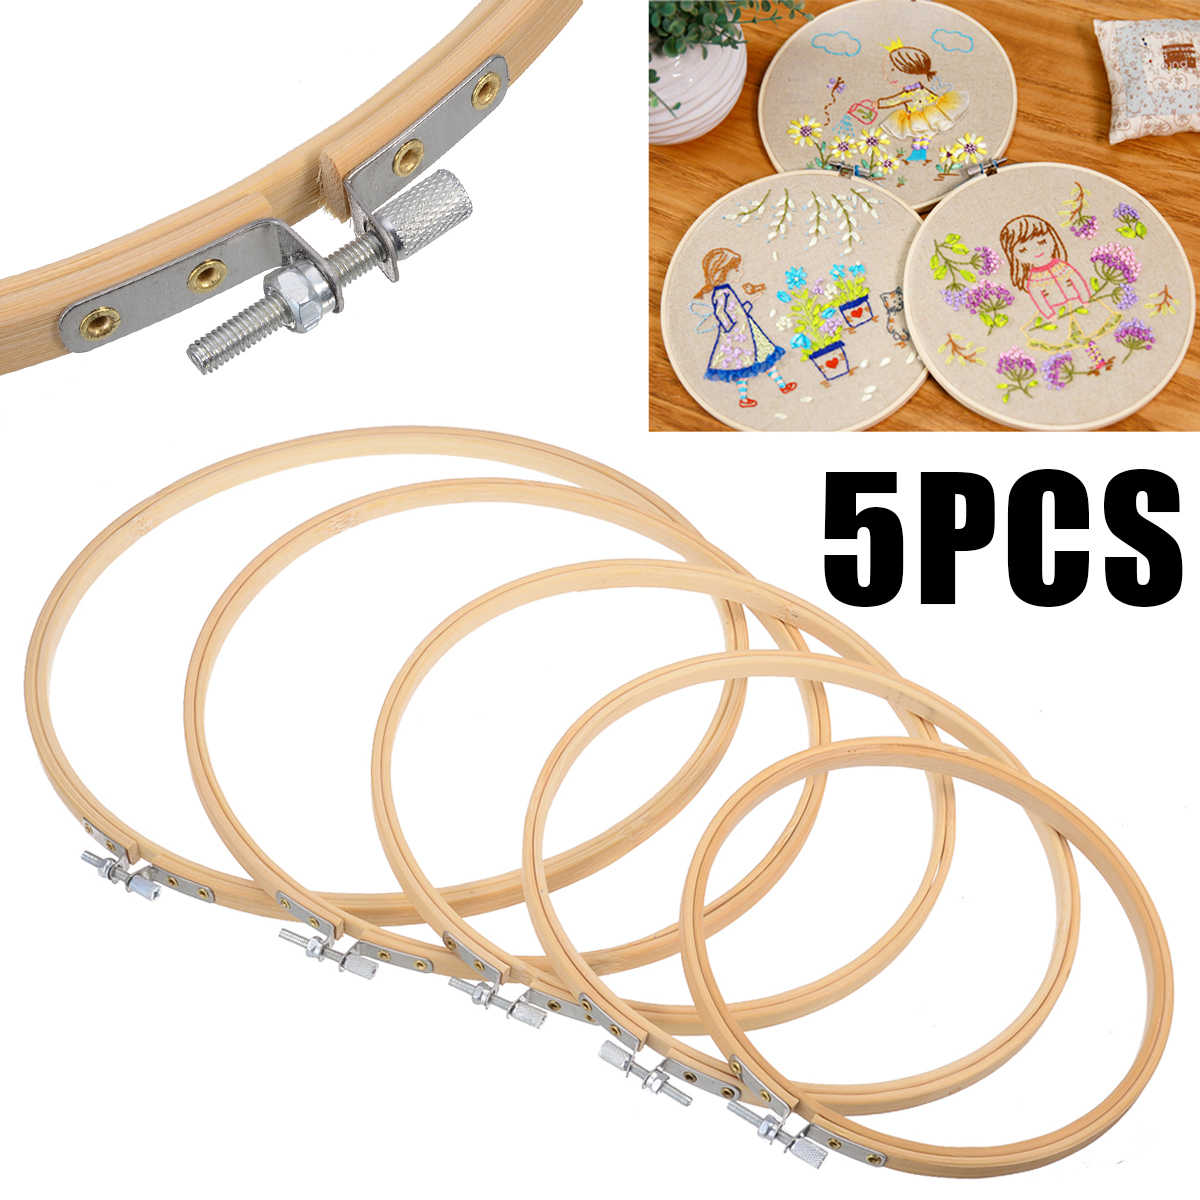 5pcs Durable Embroidery Hoop Set Bamboo Circle Cross Stitch Hoop Ring 15cm-26cm For DIY Sewing Tools